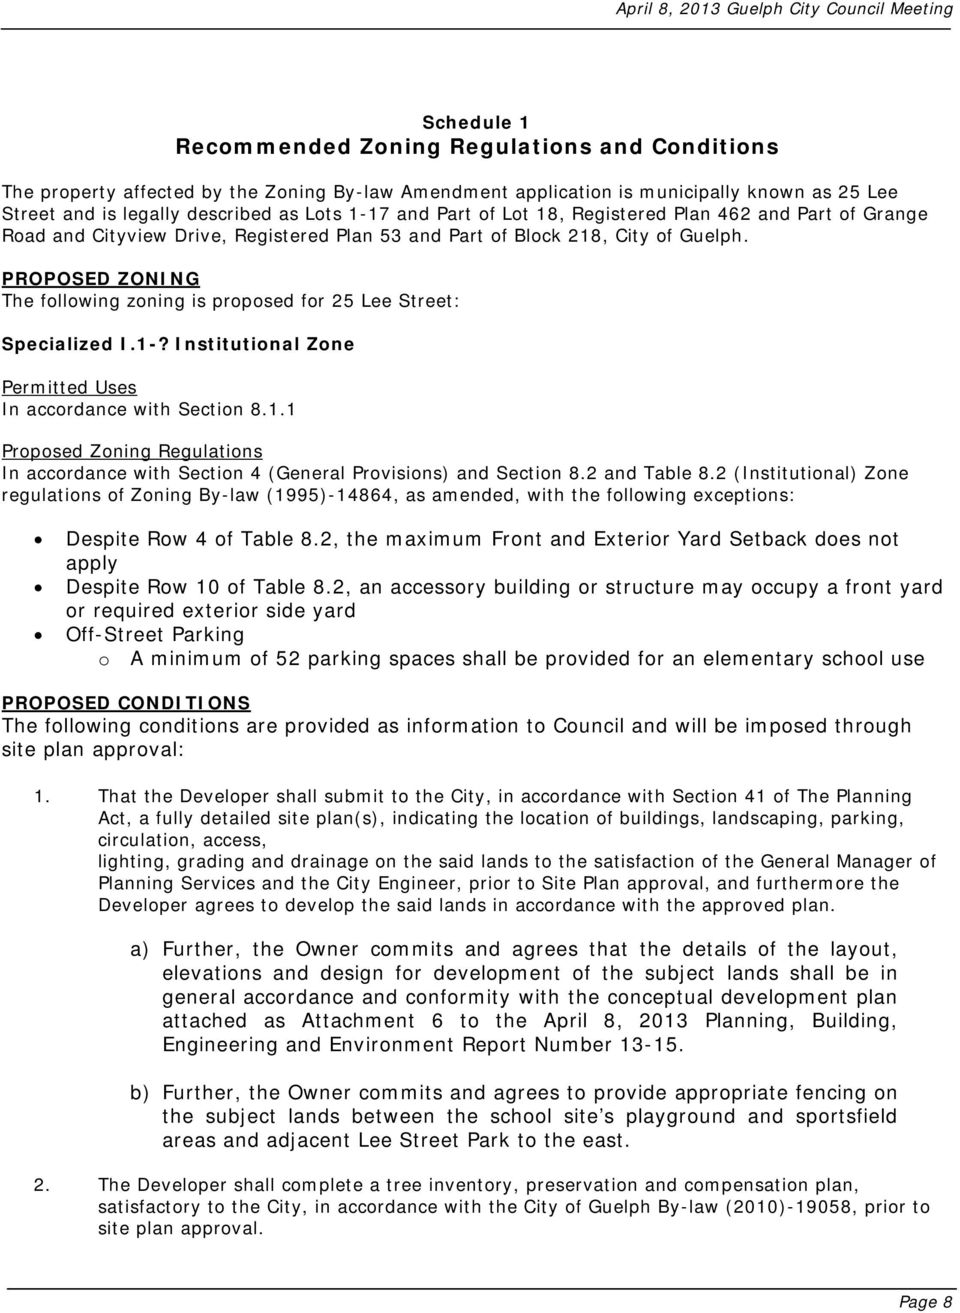 PROPOSED ZONING The following zoning is proposed for 25 Lee Street: Specialized I.1-? Institutional Zone Permitted Uses In accordance with Section 8.1.1 Proposed Zoning Regulations In accordance with Section 4 (General Provisions) and Section 8.